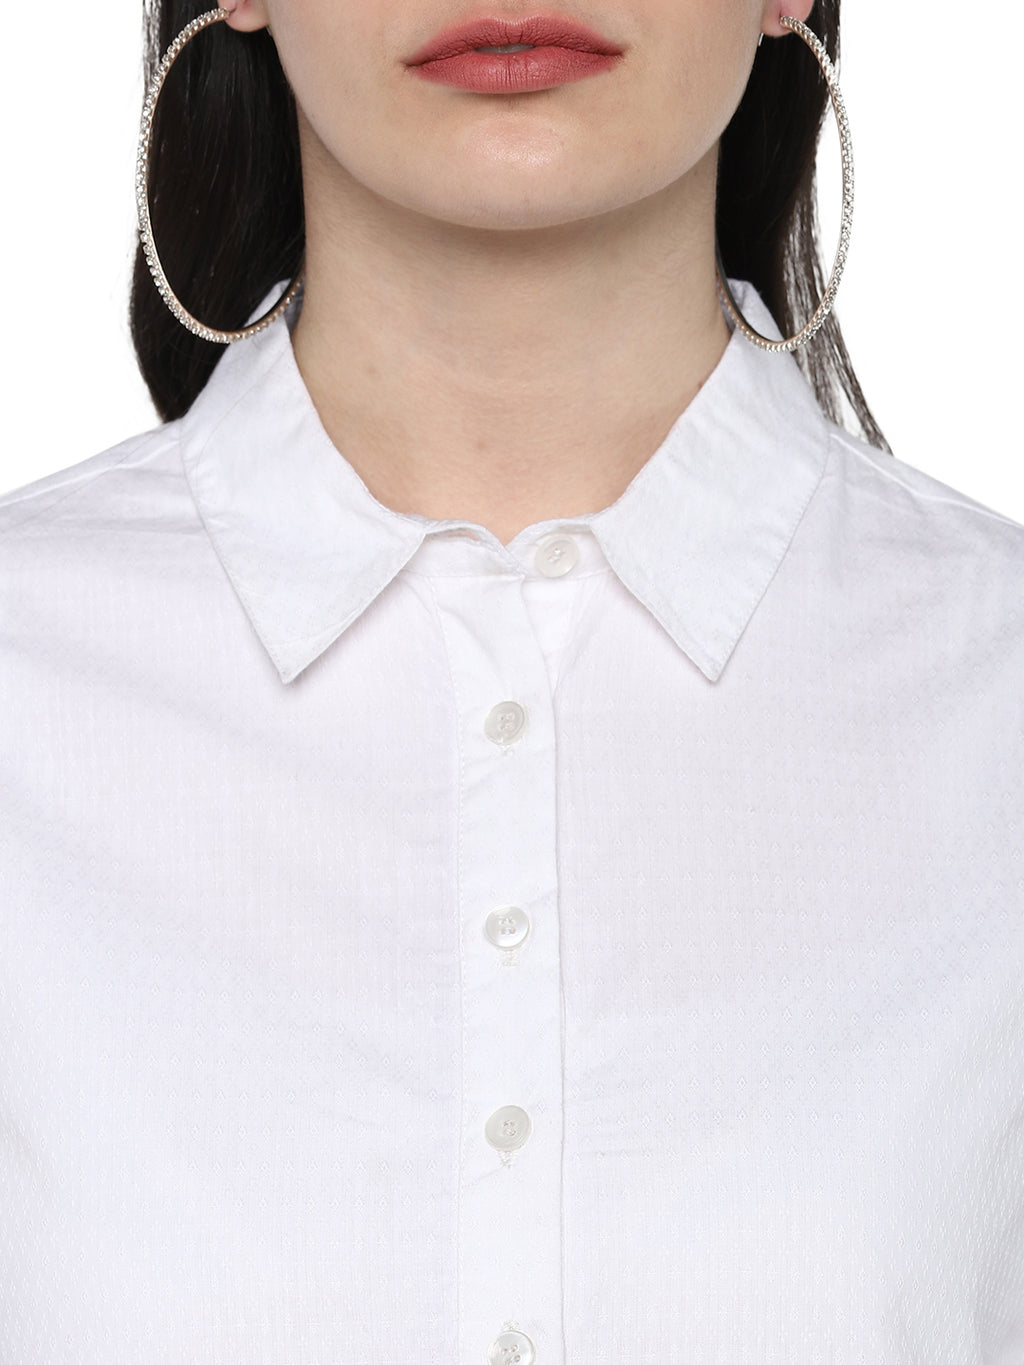 White Dobby  Nursing top with front tie up - momsoon maternity fashion wear